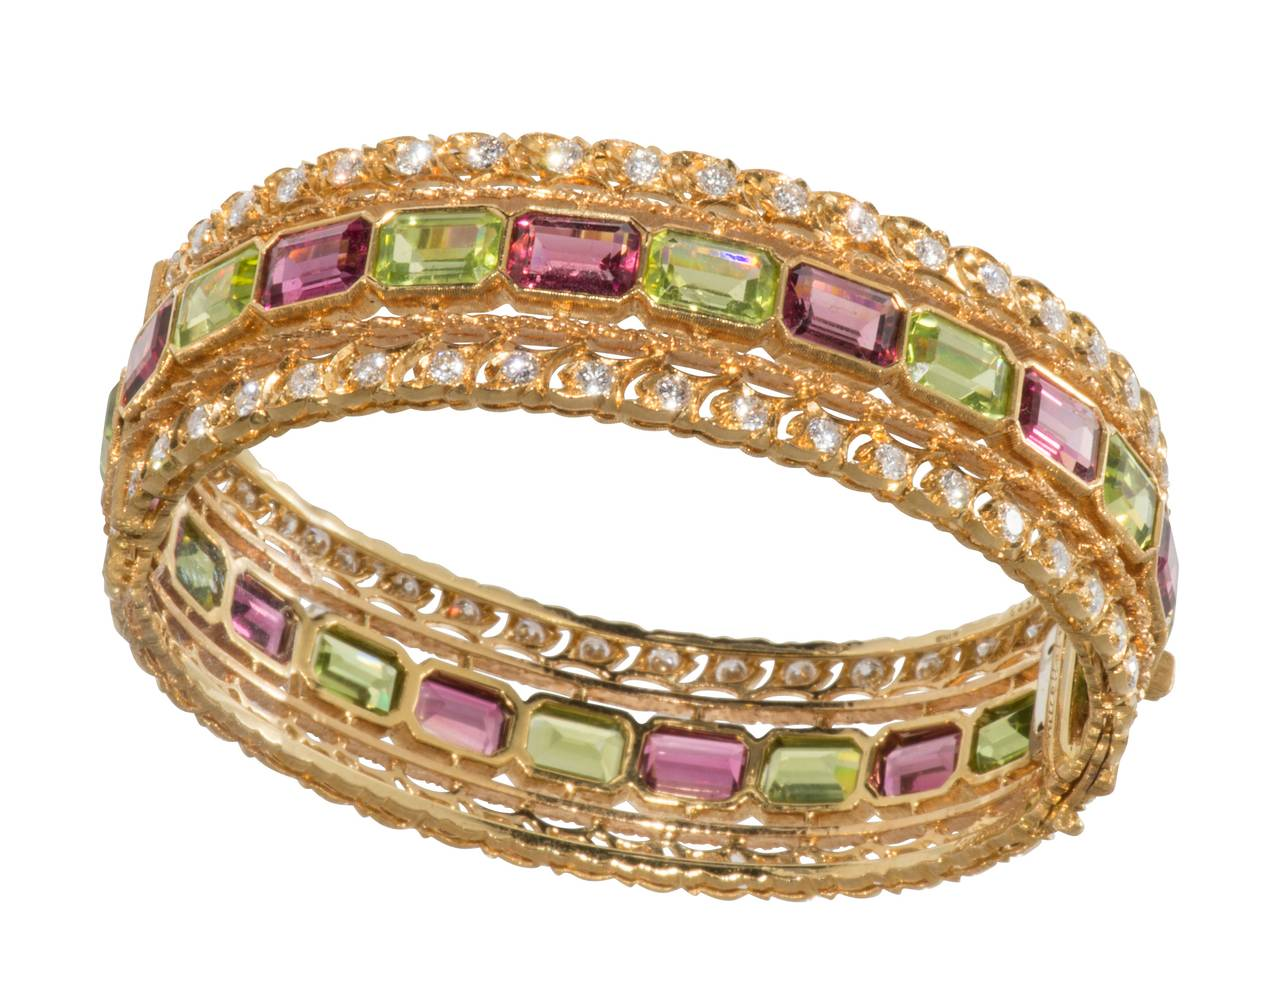 Buccellati Rubelite Peridot Diamond Gold Bracelet In Excellent Condition For Sale In Houston, TX